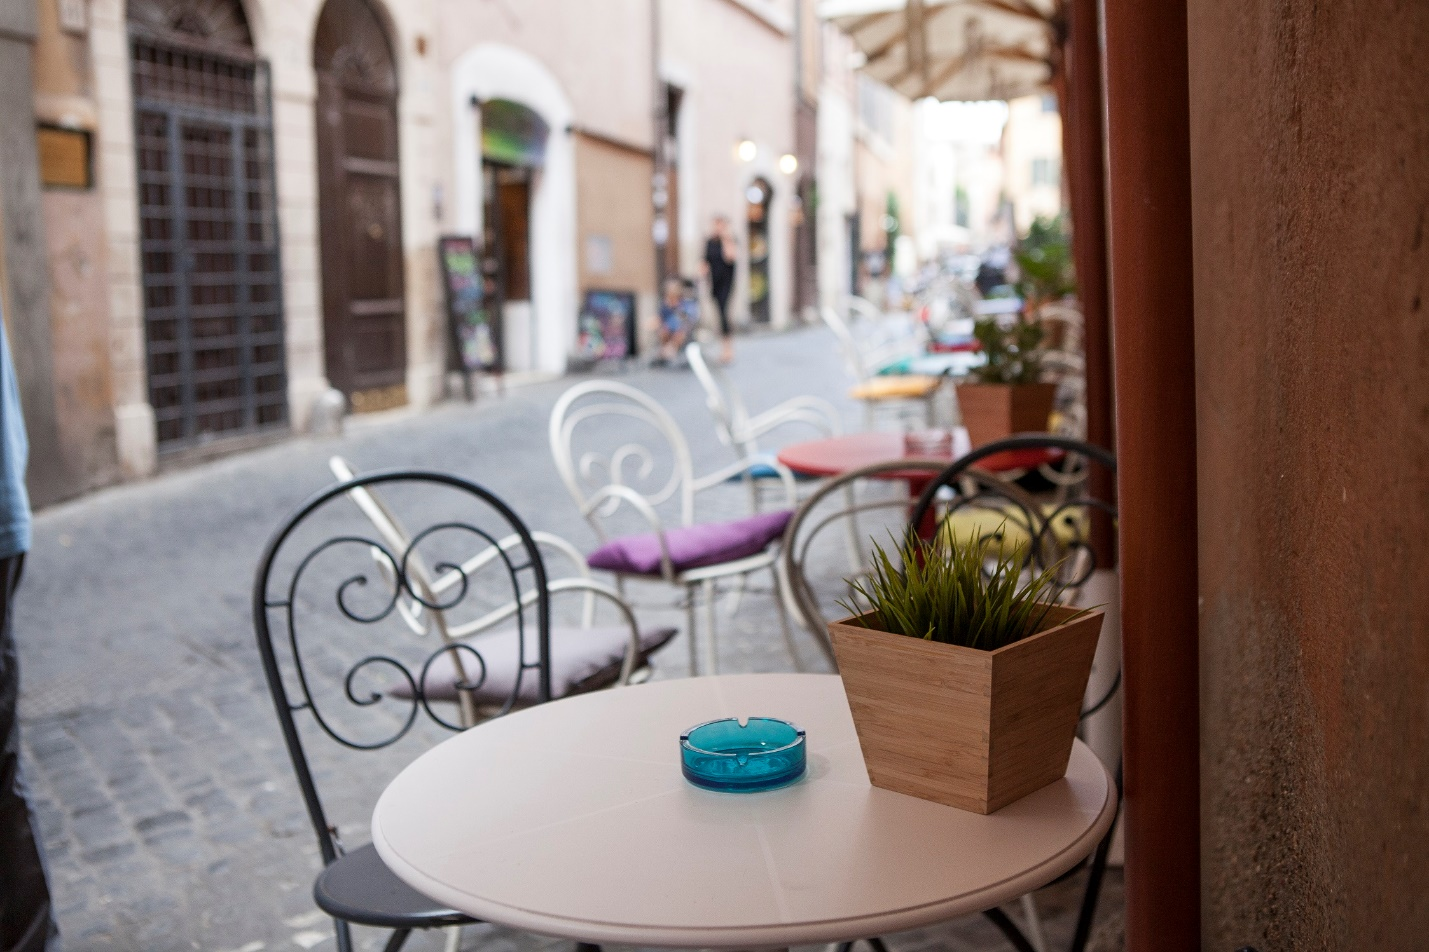 3 Authentic Lazio Desserts to Try While You Study in Italy, jcu food tour, Italian food, study abroad in Rome, roman desserts, Trastevere cafes